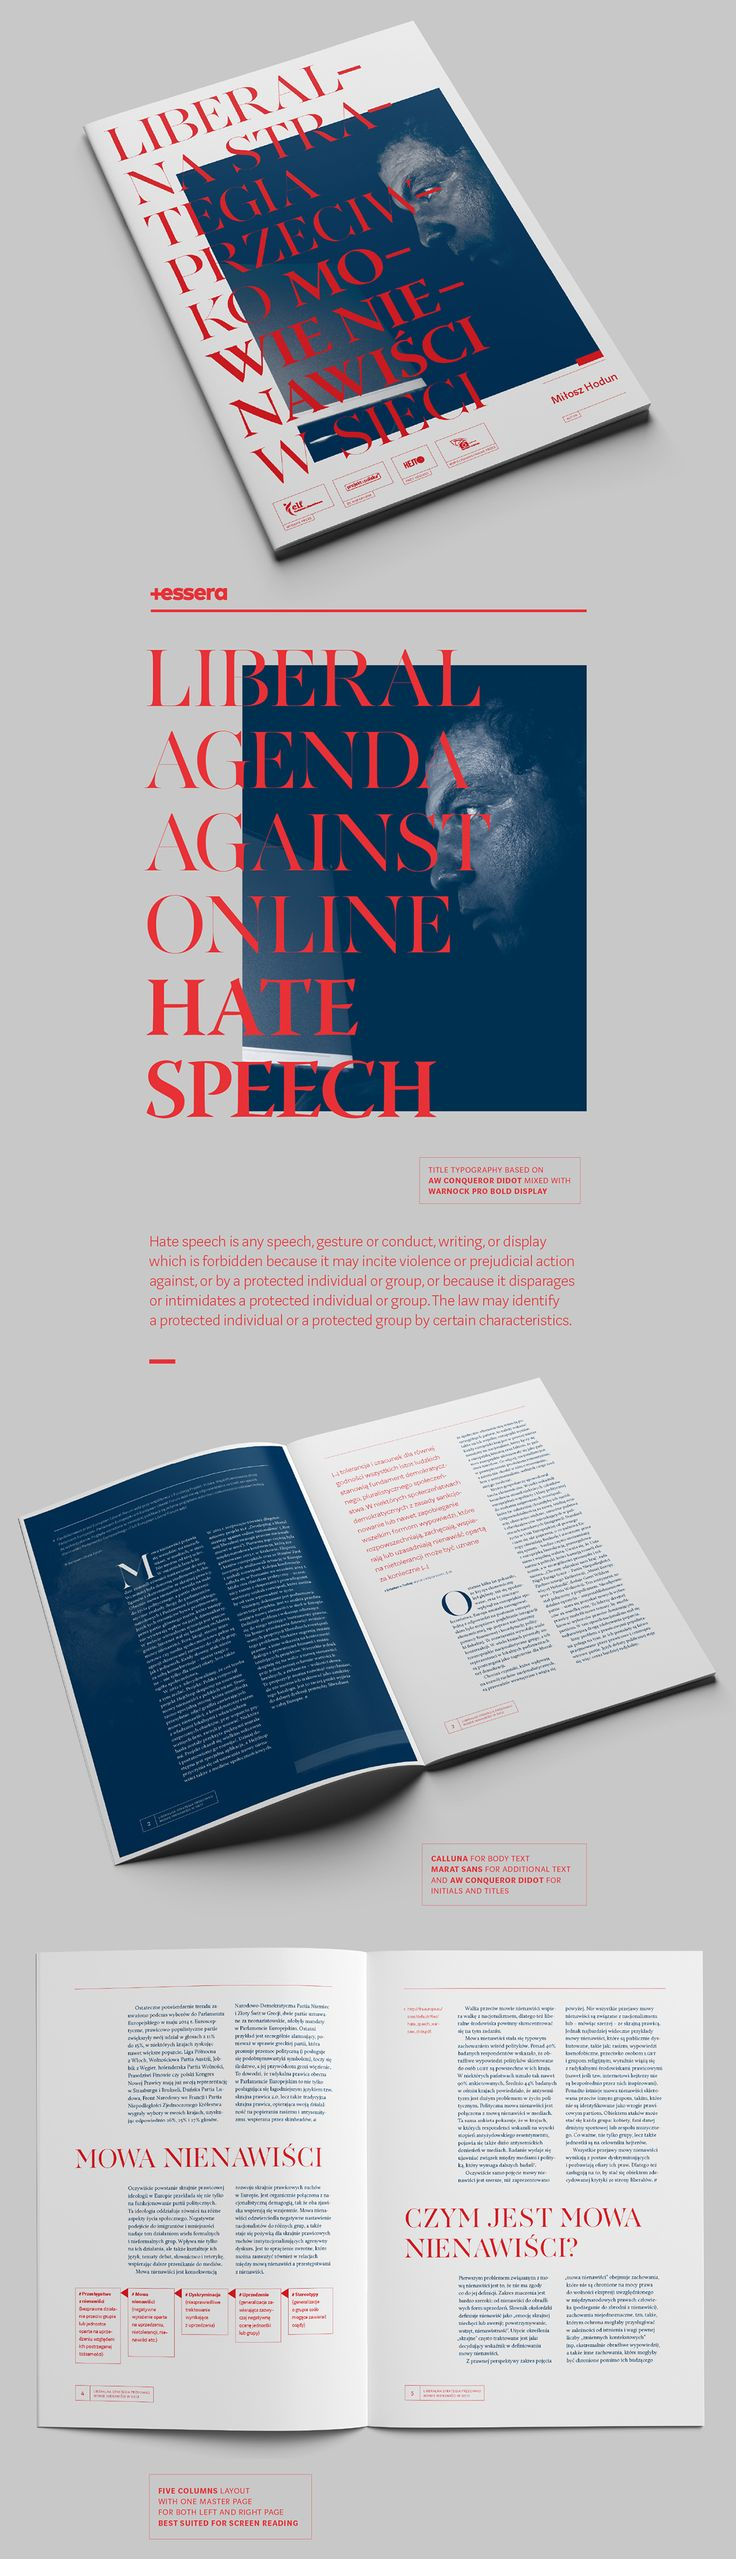 liberal agenda against online hate speech (brochure) on Behance